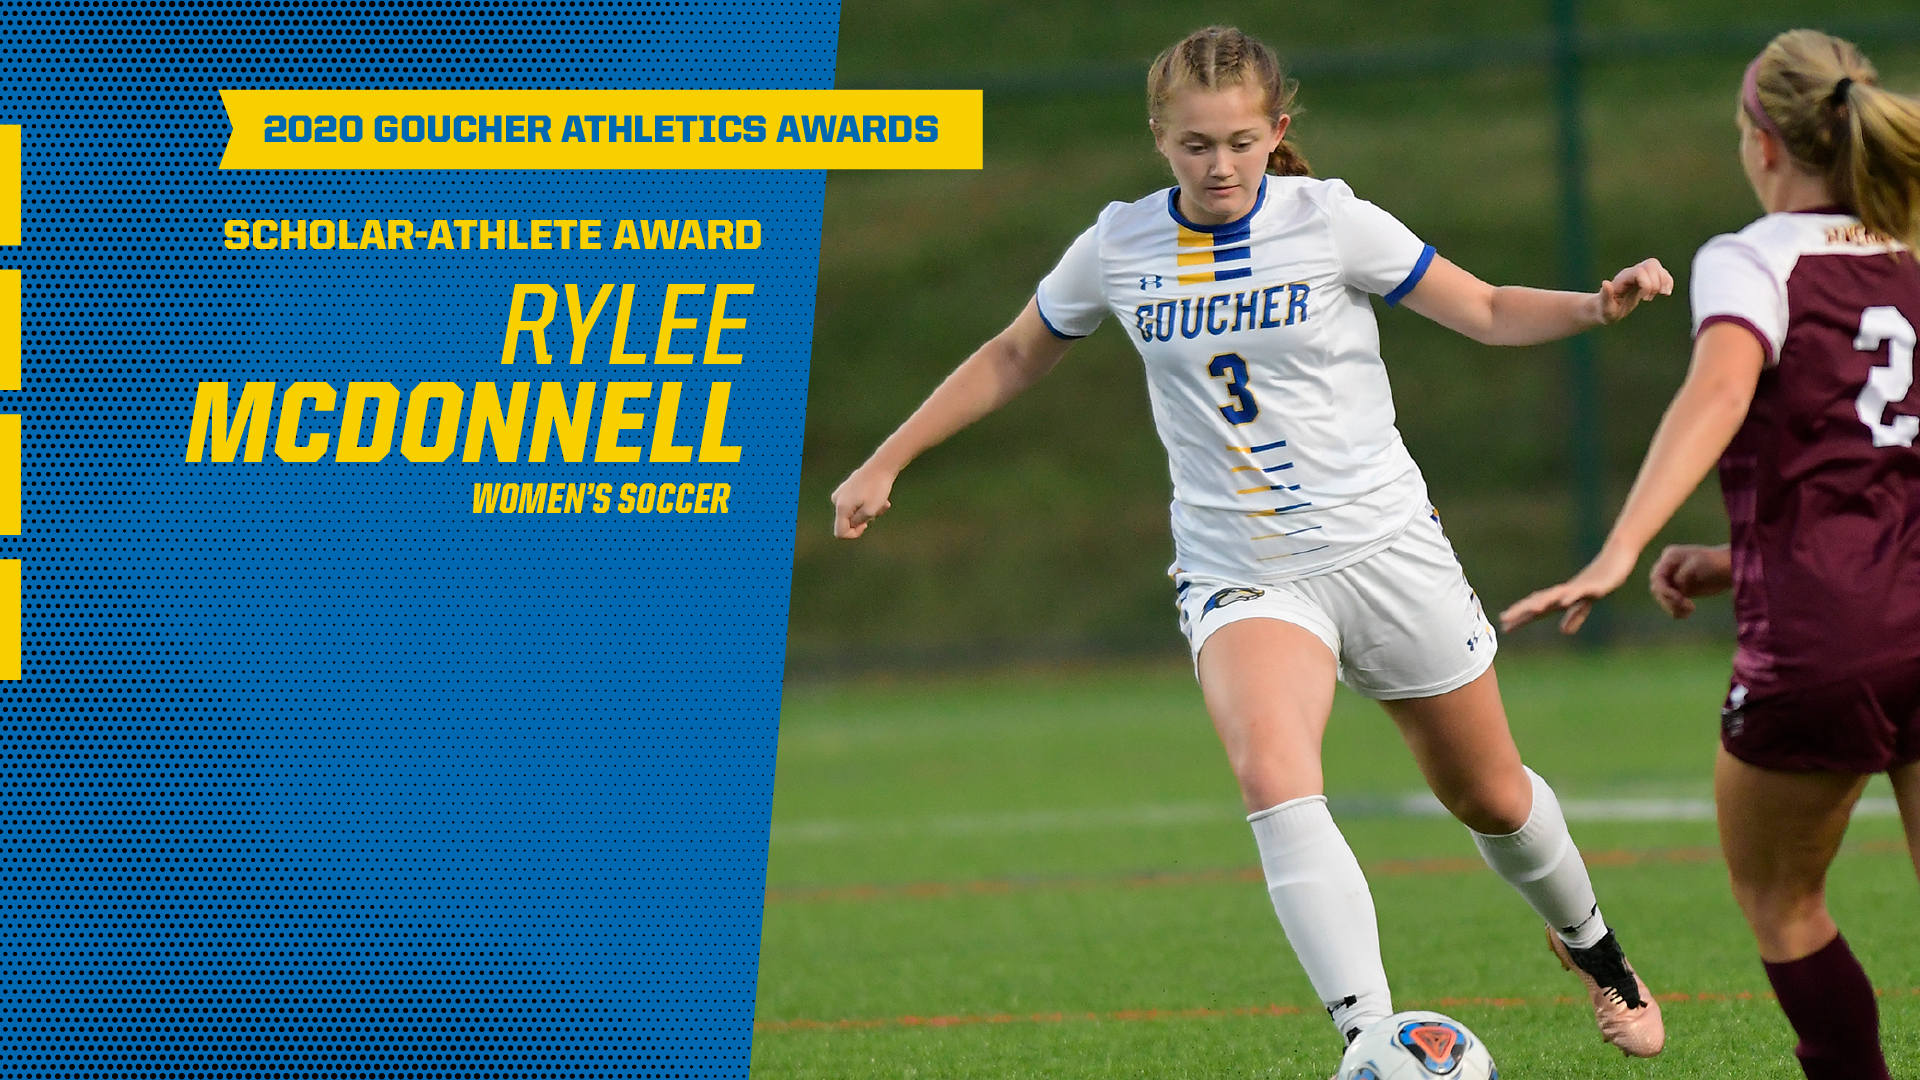 Goucher Athletics Announces Scholar Athlete Award